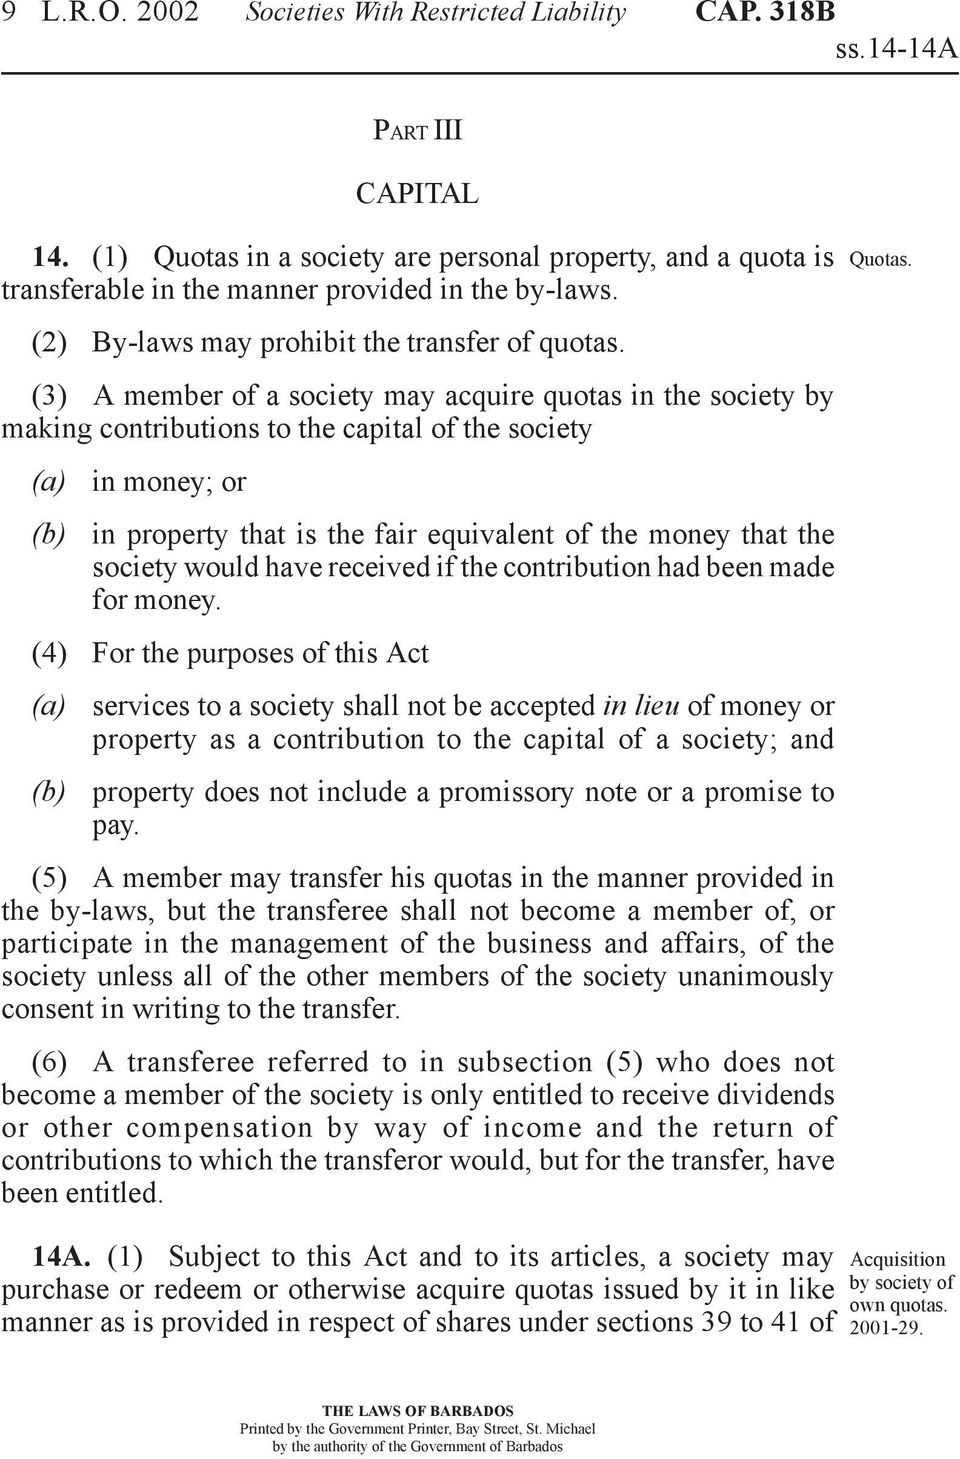 (3) A member of a society may acquire quotas in the society by making contributions to the capital of the society in money; or in property that is the fair equivalent of the money that the society